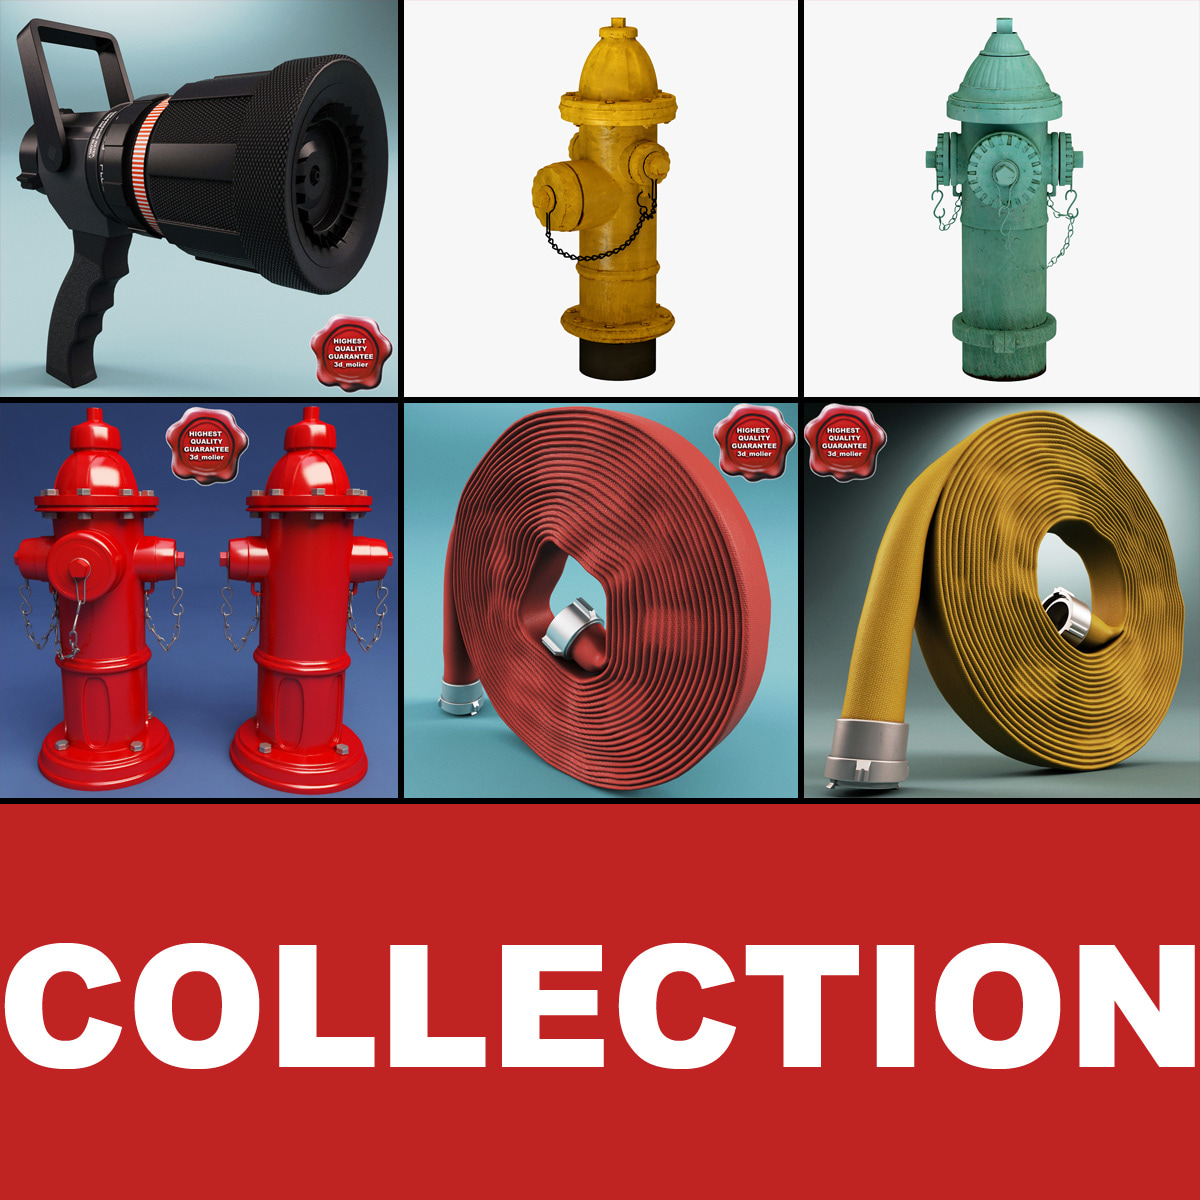 Fire_Hydrants_Collection_V2_000.jpg